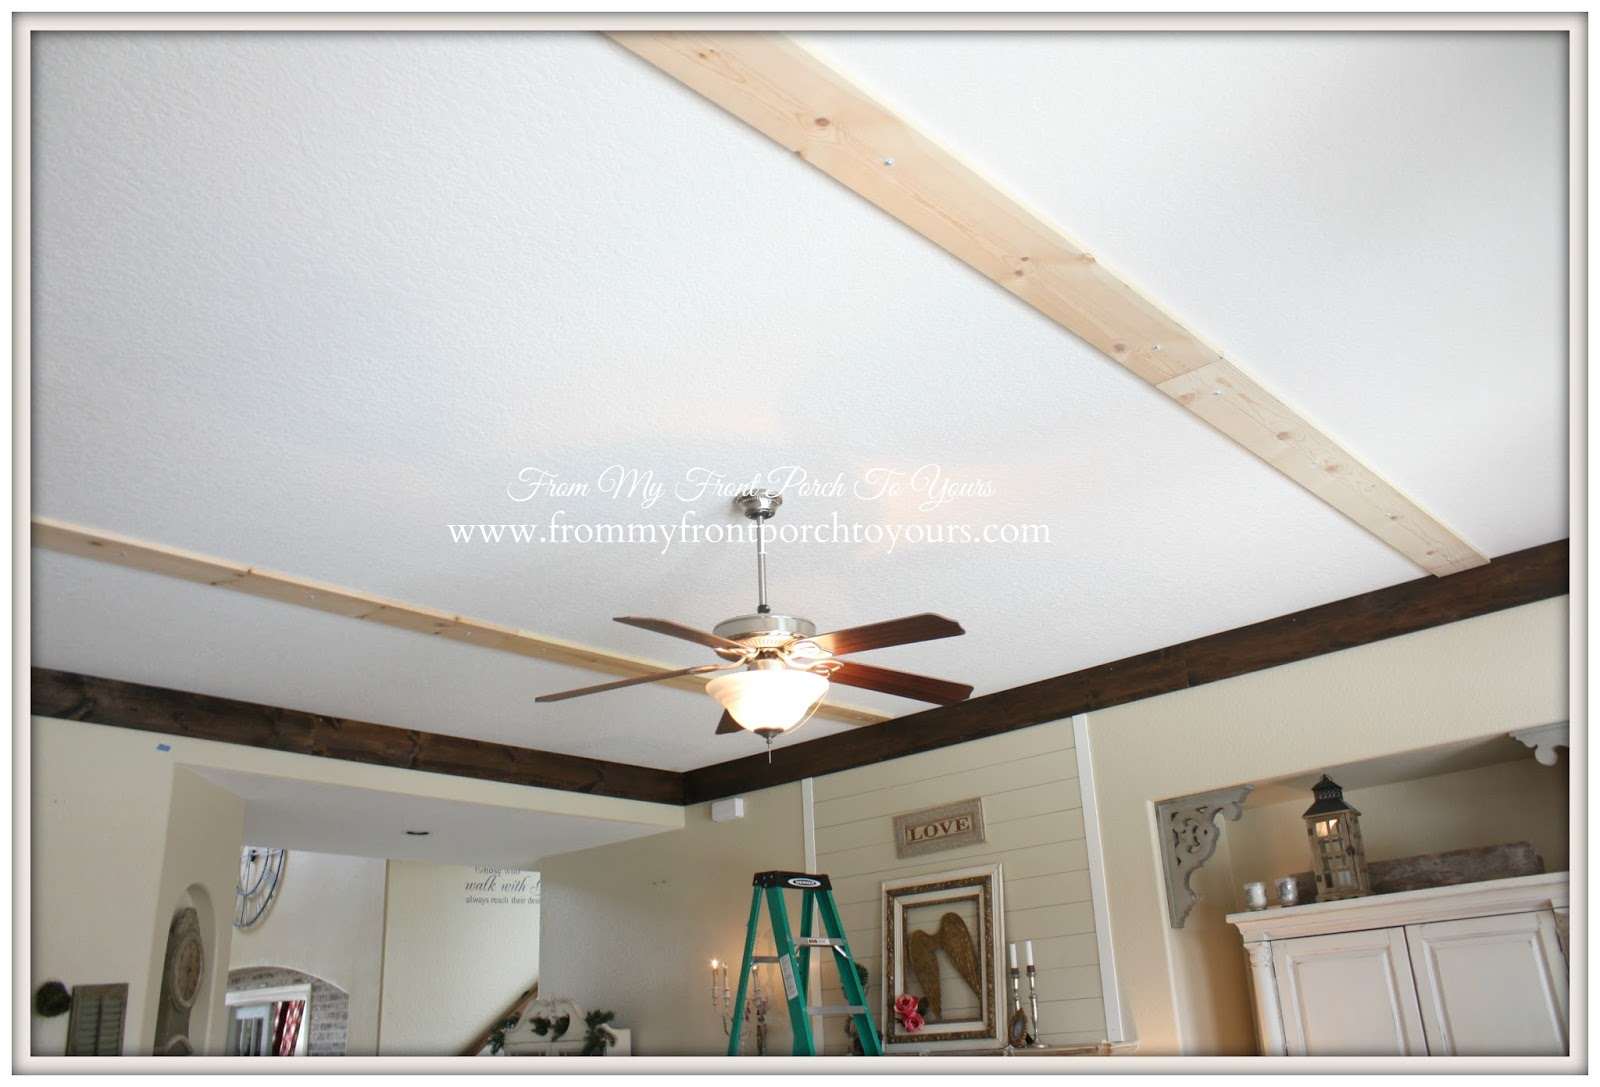 From my front porch to yours diy wood beams update for Adding wood beams to ceiling